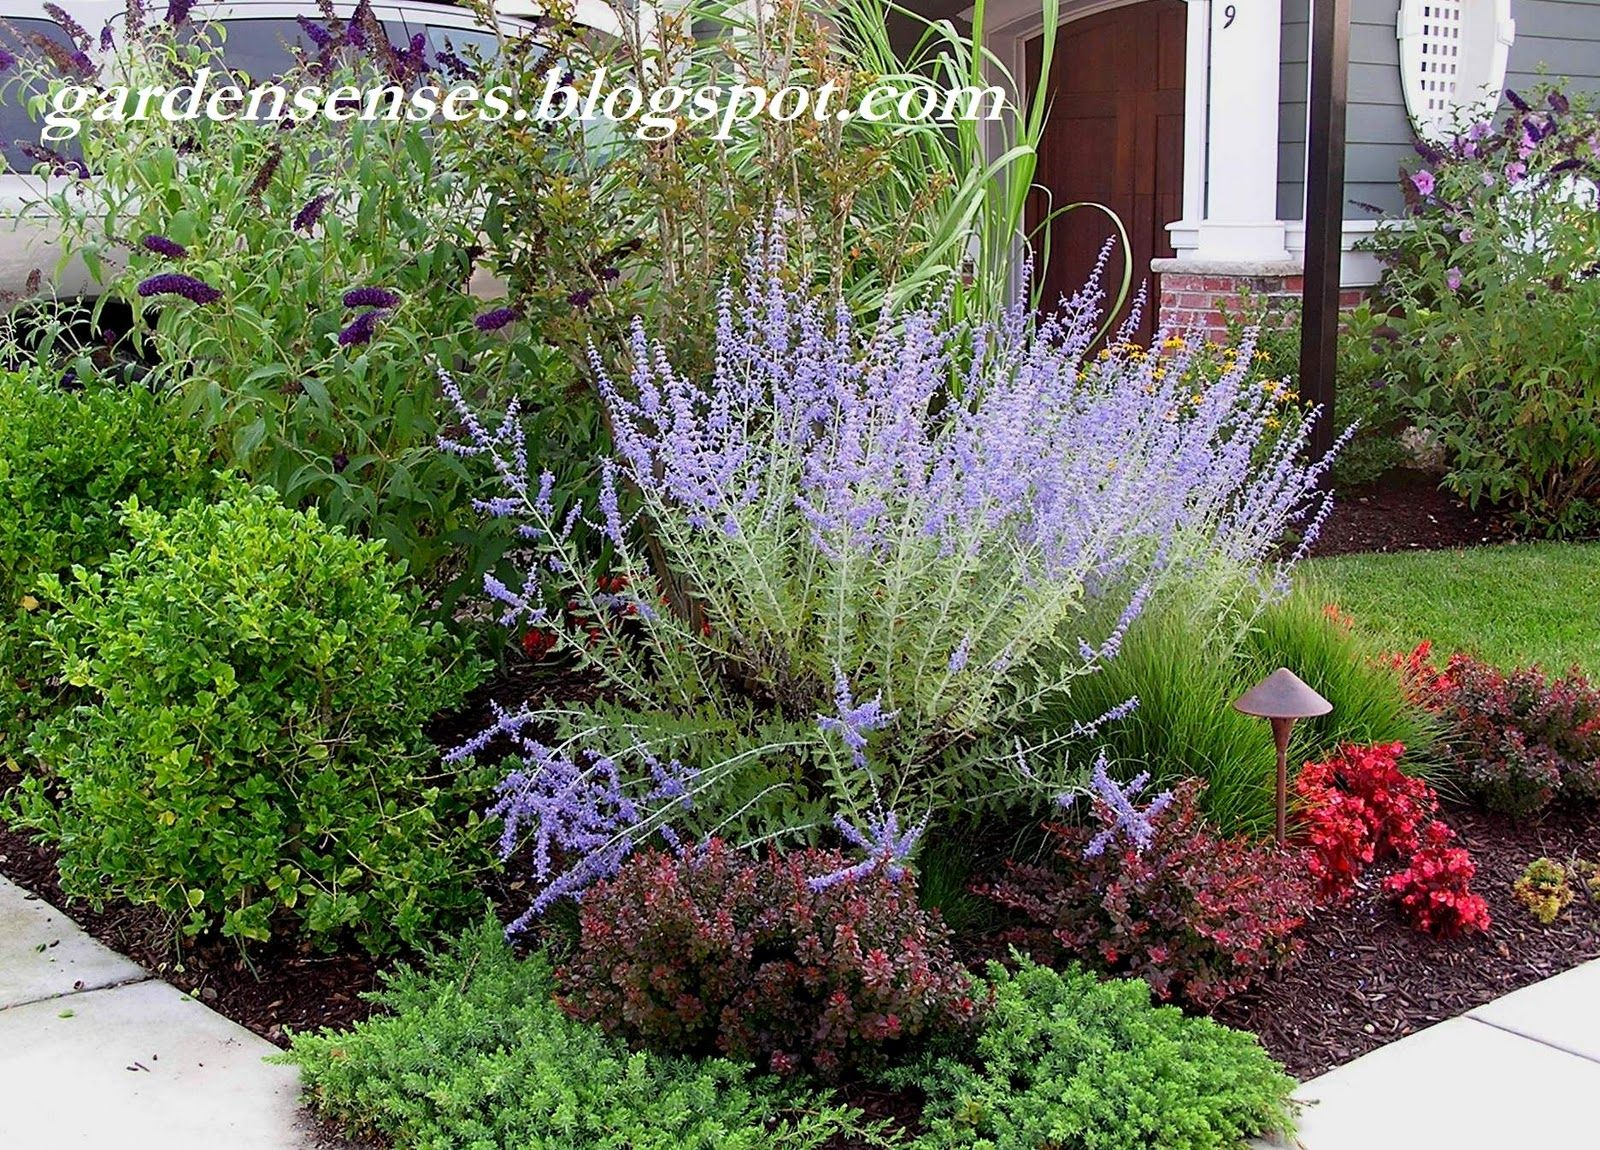 Russian sage a garden plant list pinterest for Easy garden design